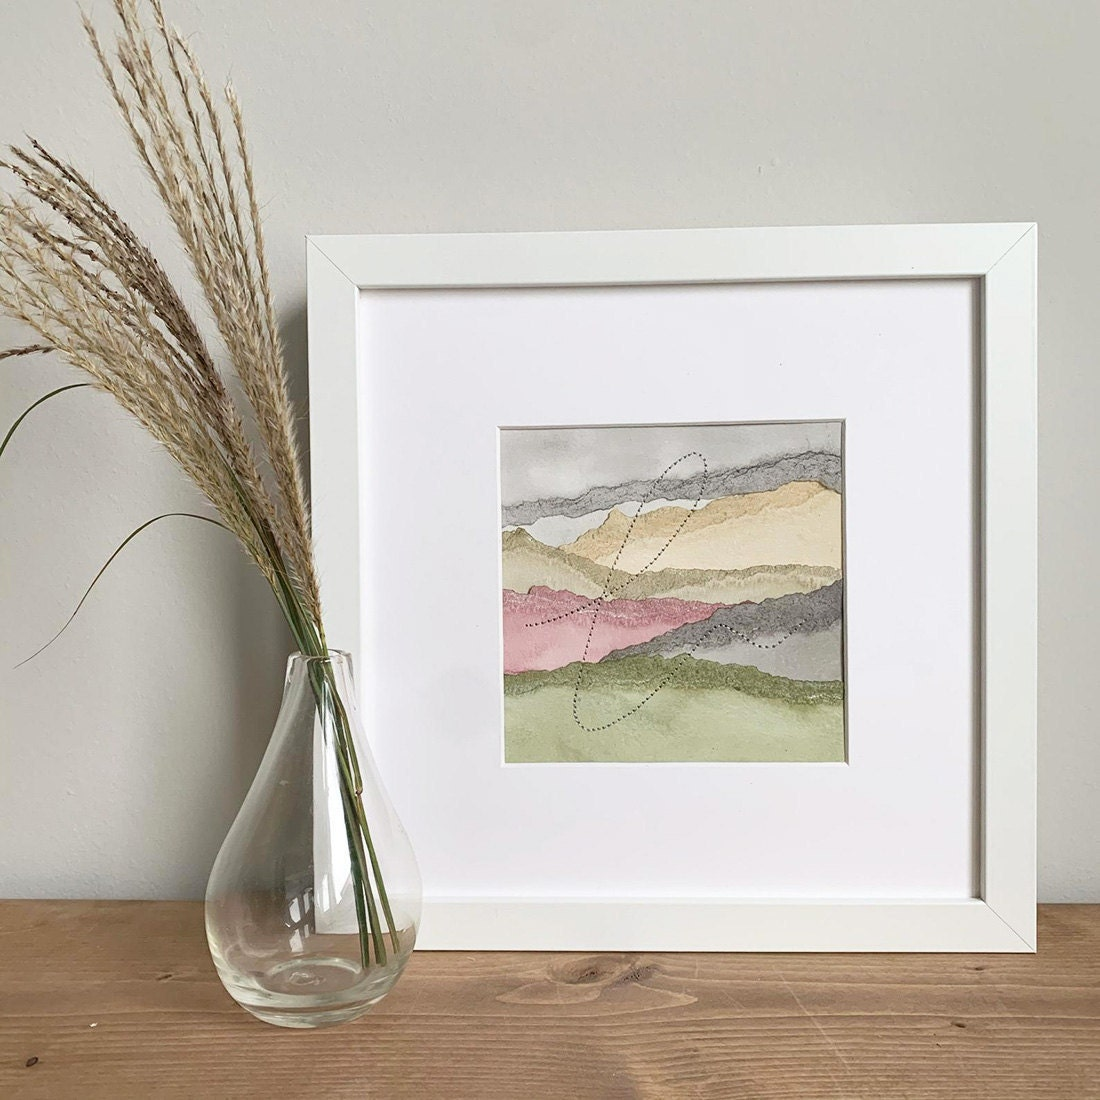 Abstract landscape wall art from Ayaka MP Art on Etsy